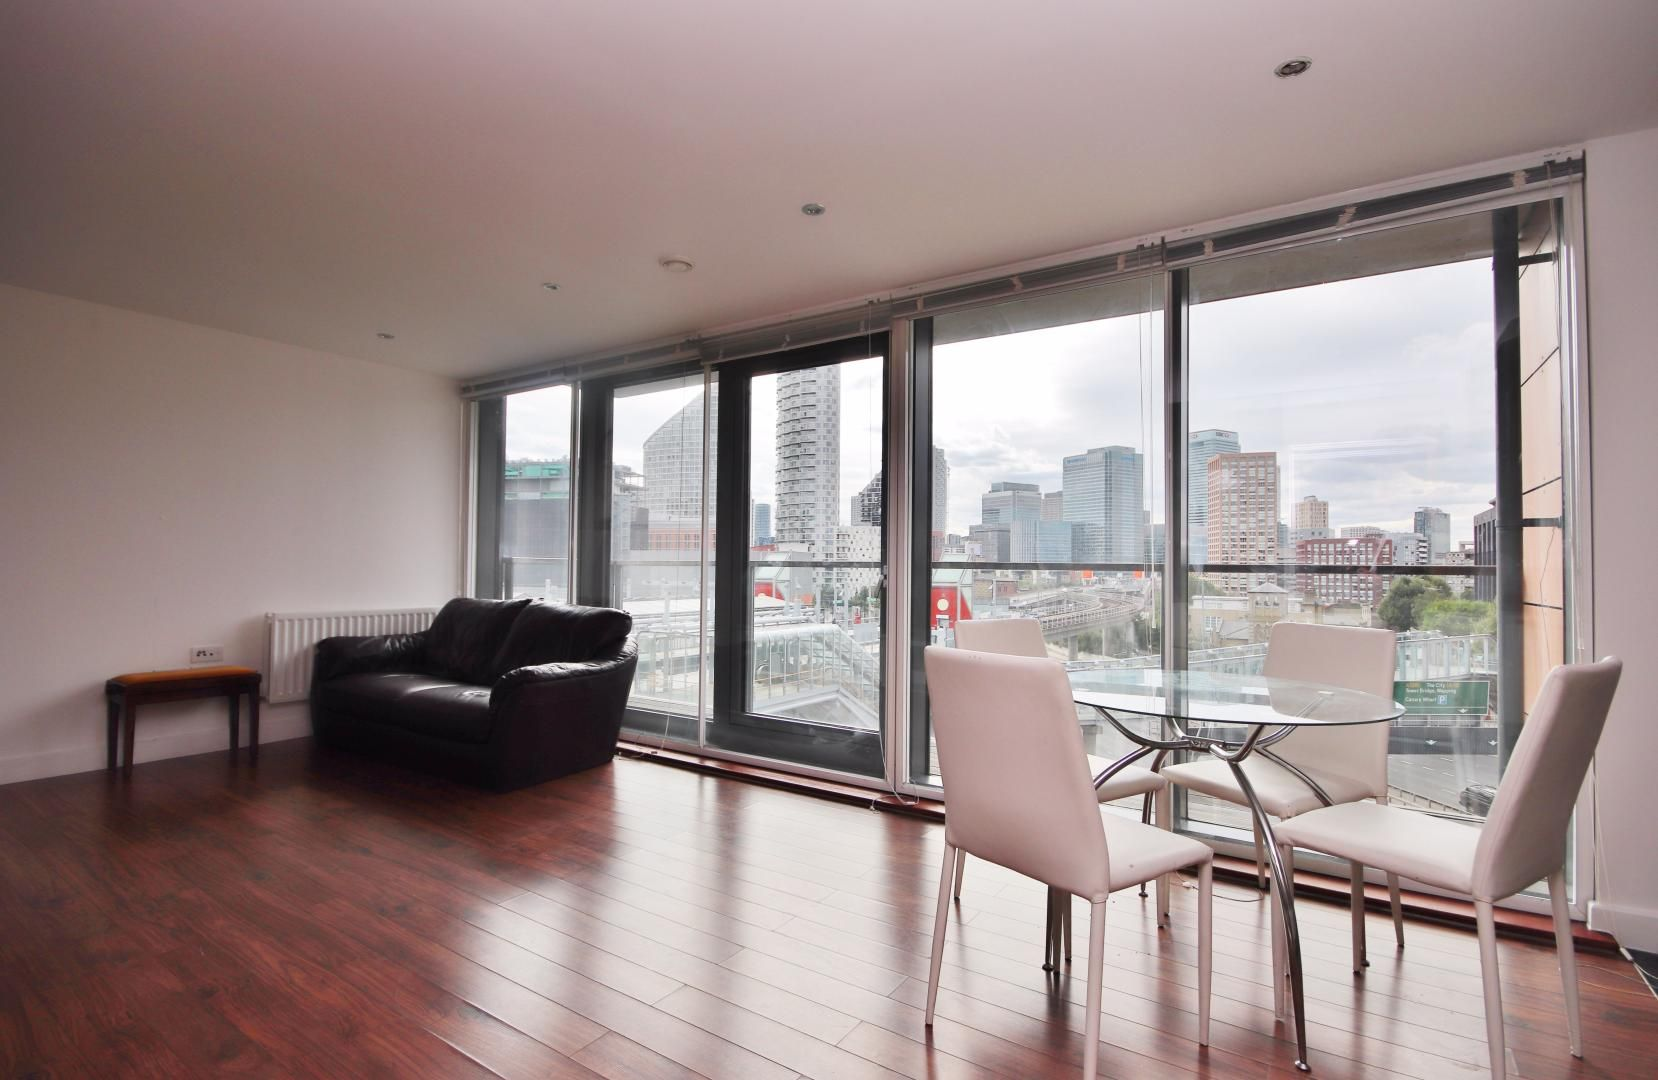 2 bed flat to rent in Elektron Tower, E14